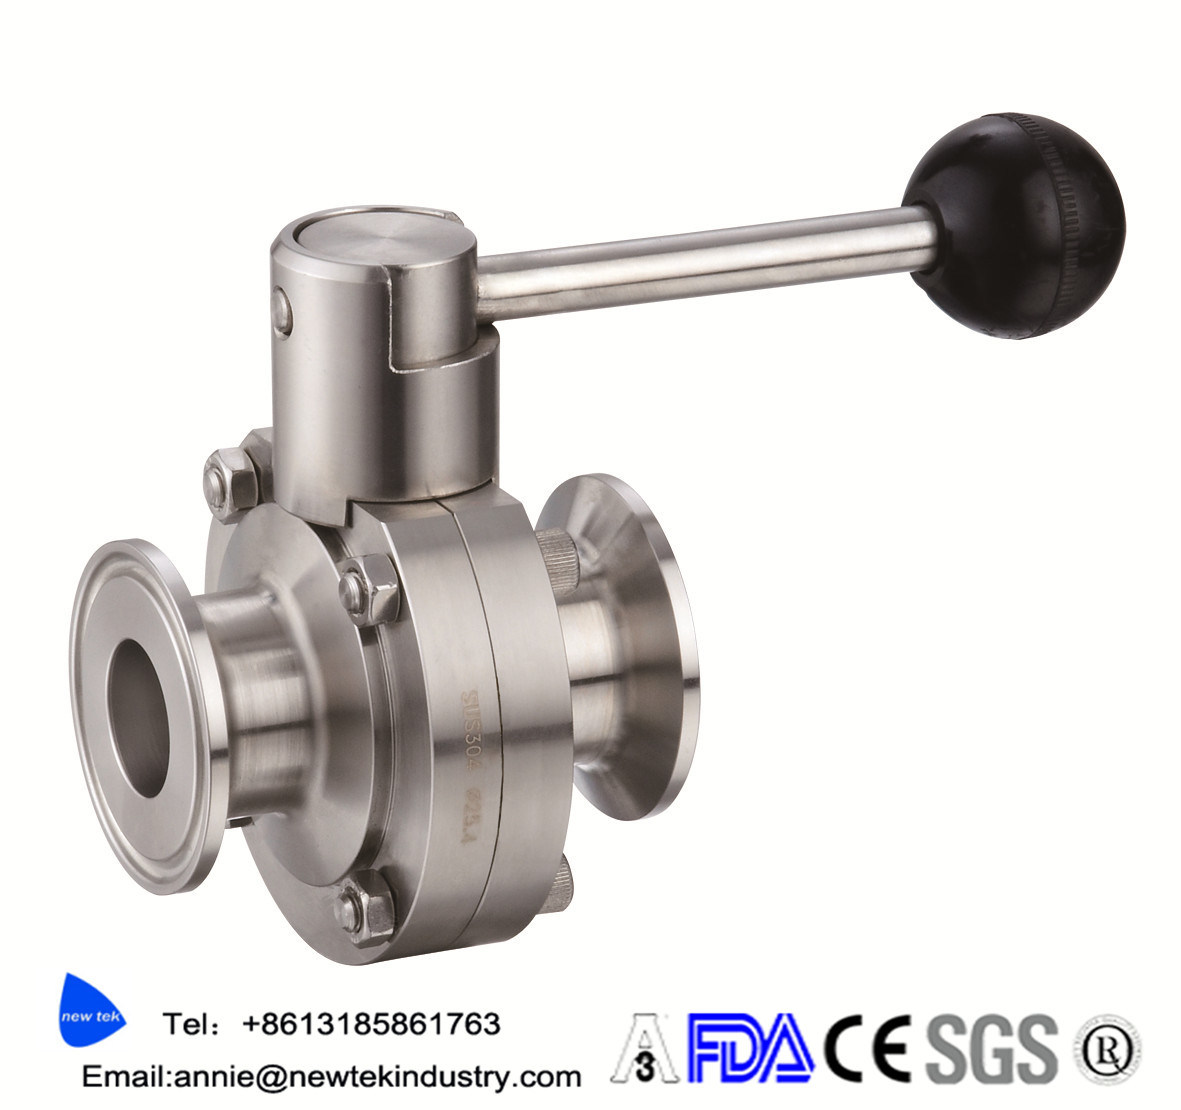 Sanitary Triclover Compatiable Pull Handle Butterfly Valve